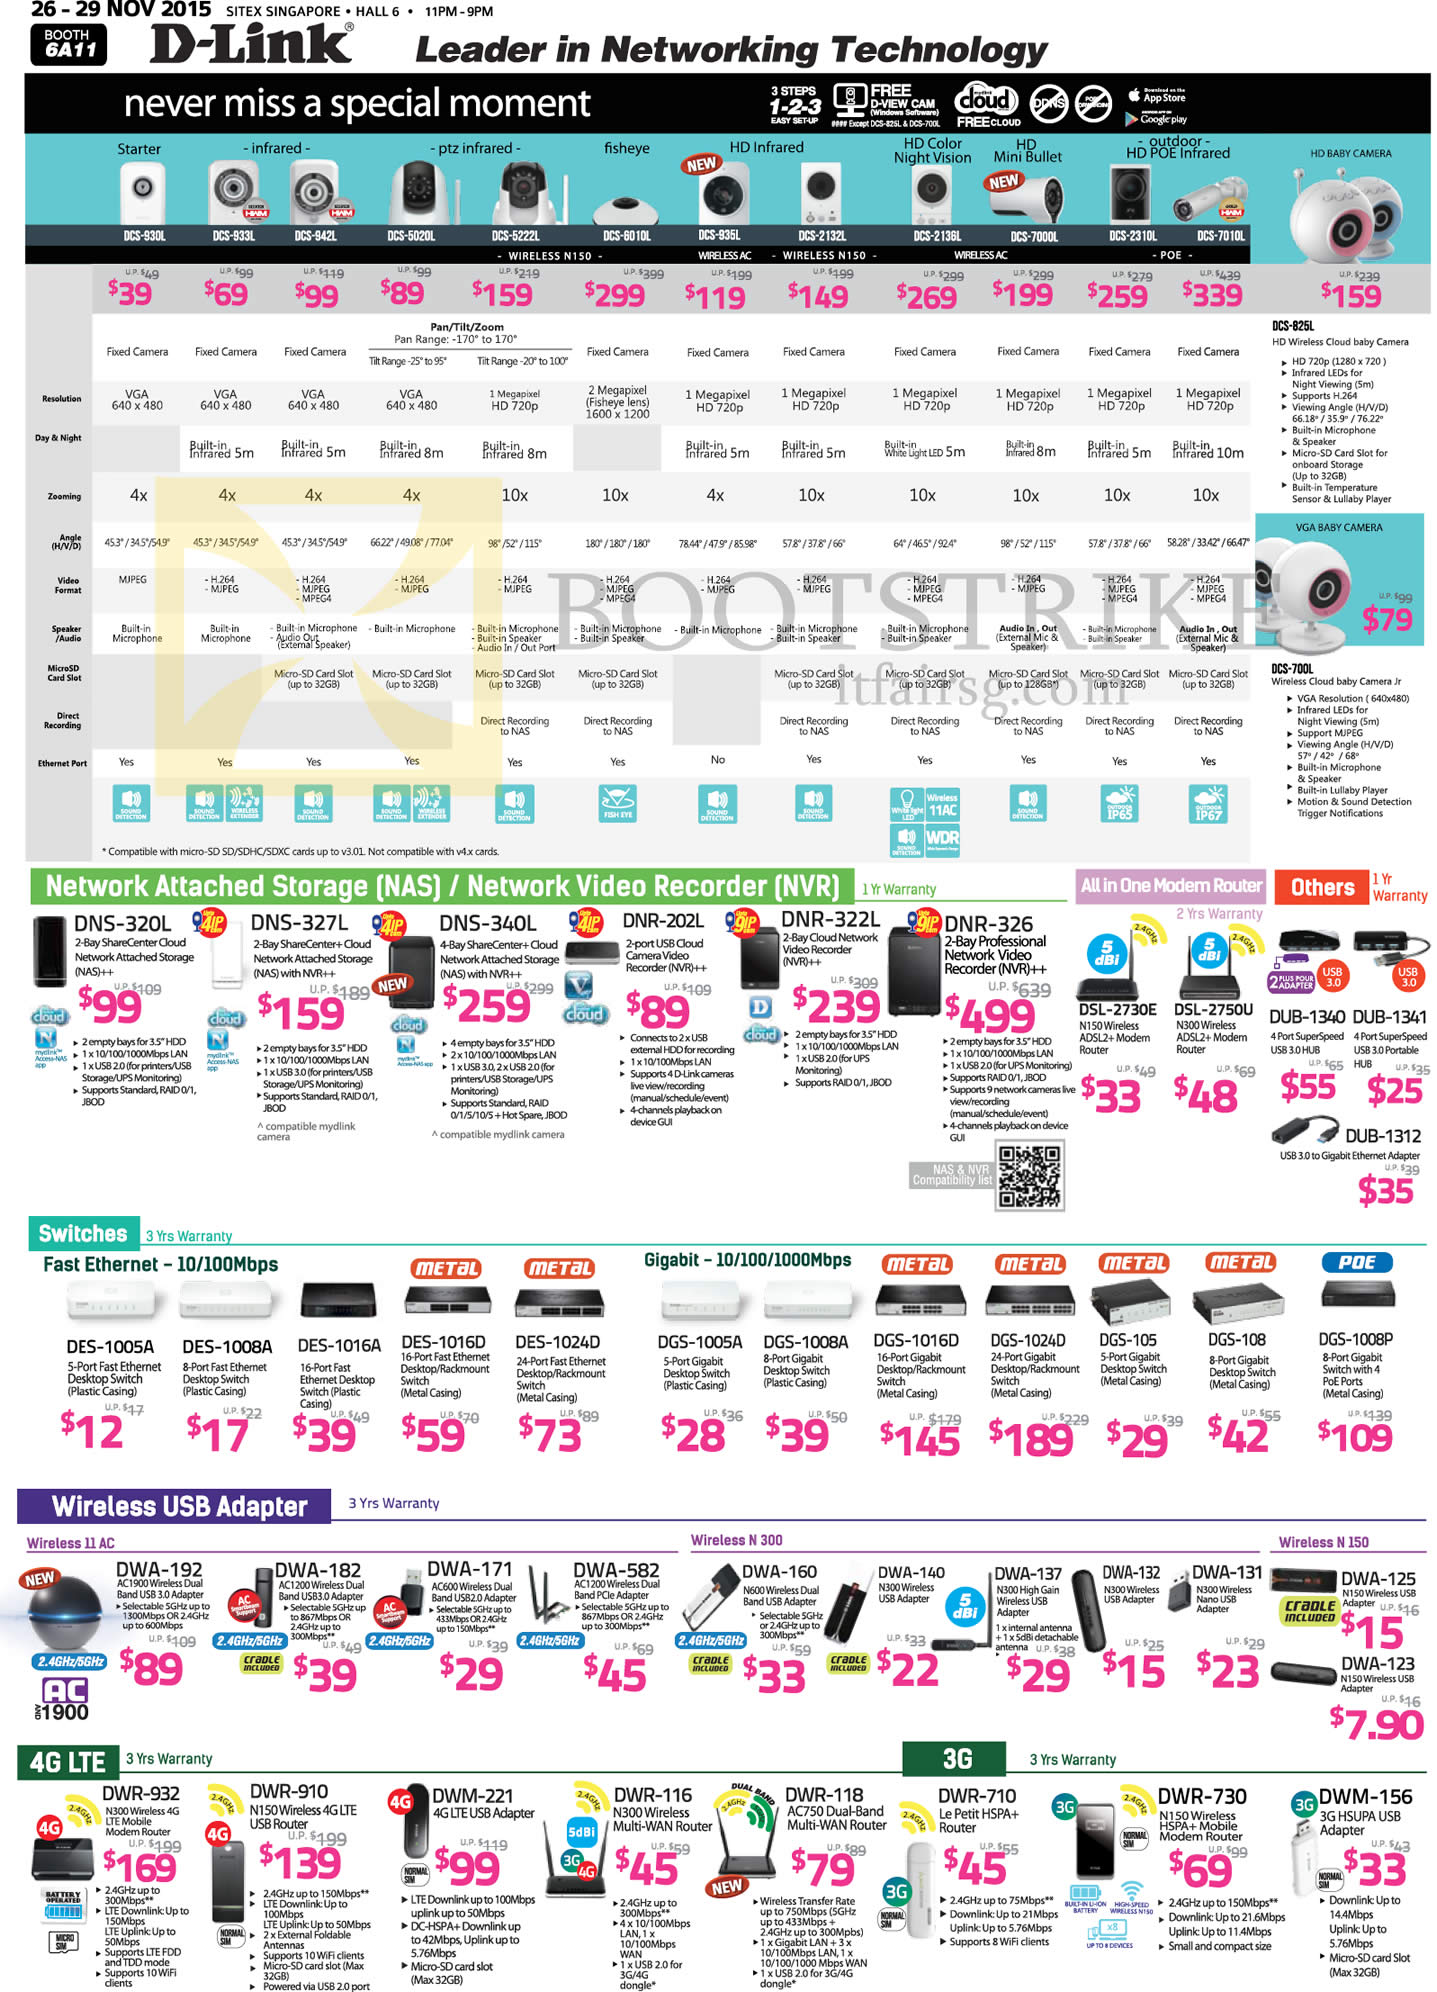 SITEX 2015 price list image brochure of D-Link IP Cameras, NAS, NVR, AIO Modem Router, Switches, Wireless USB Adapter, DNS-320L 327L 202L, DES-1005A 1008A 1016A DGS-1005A 1008A 1016D, DWA-192 182 171